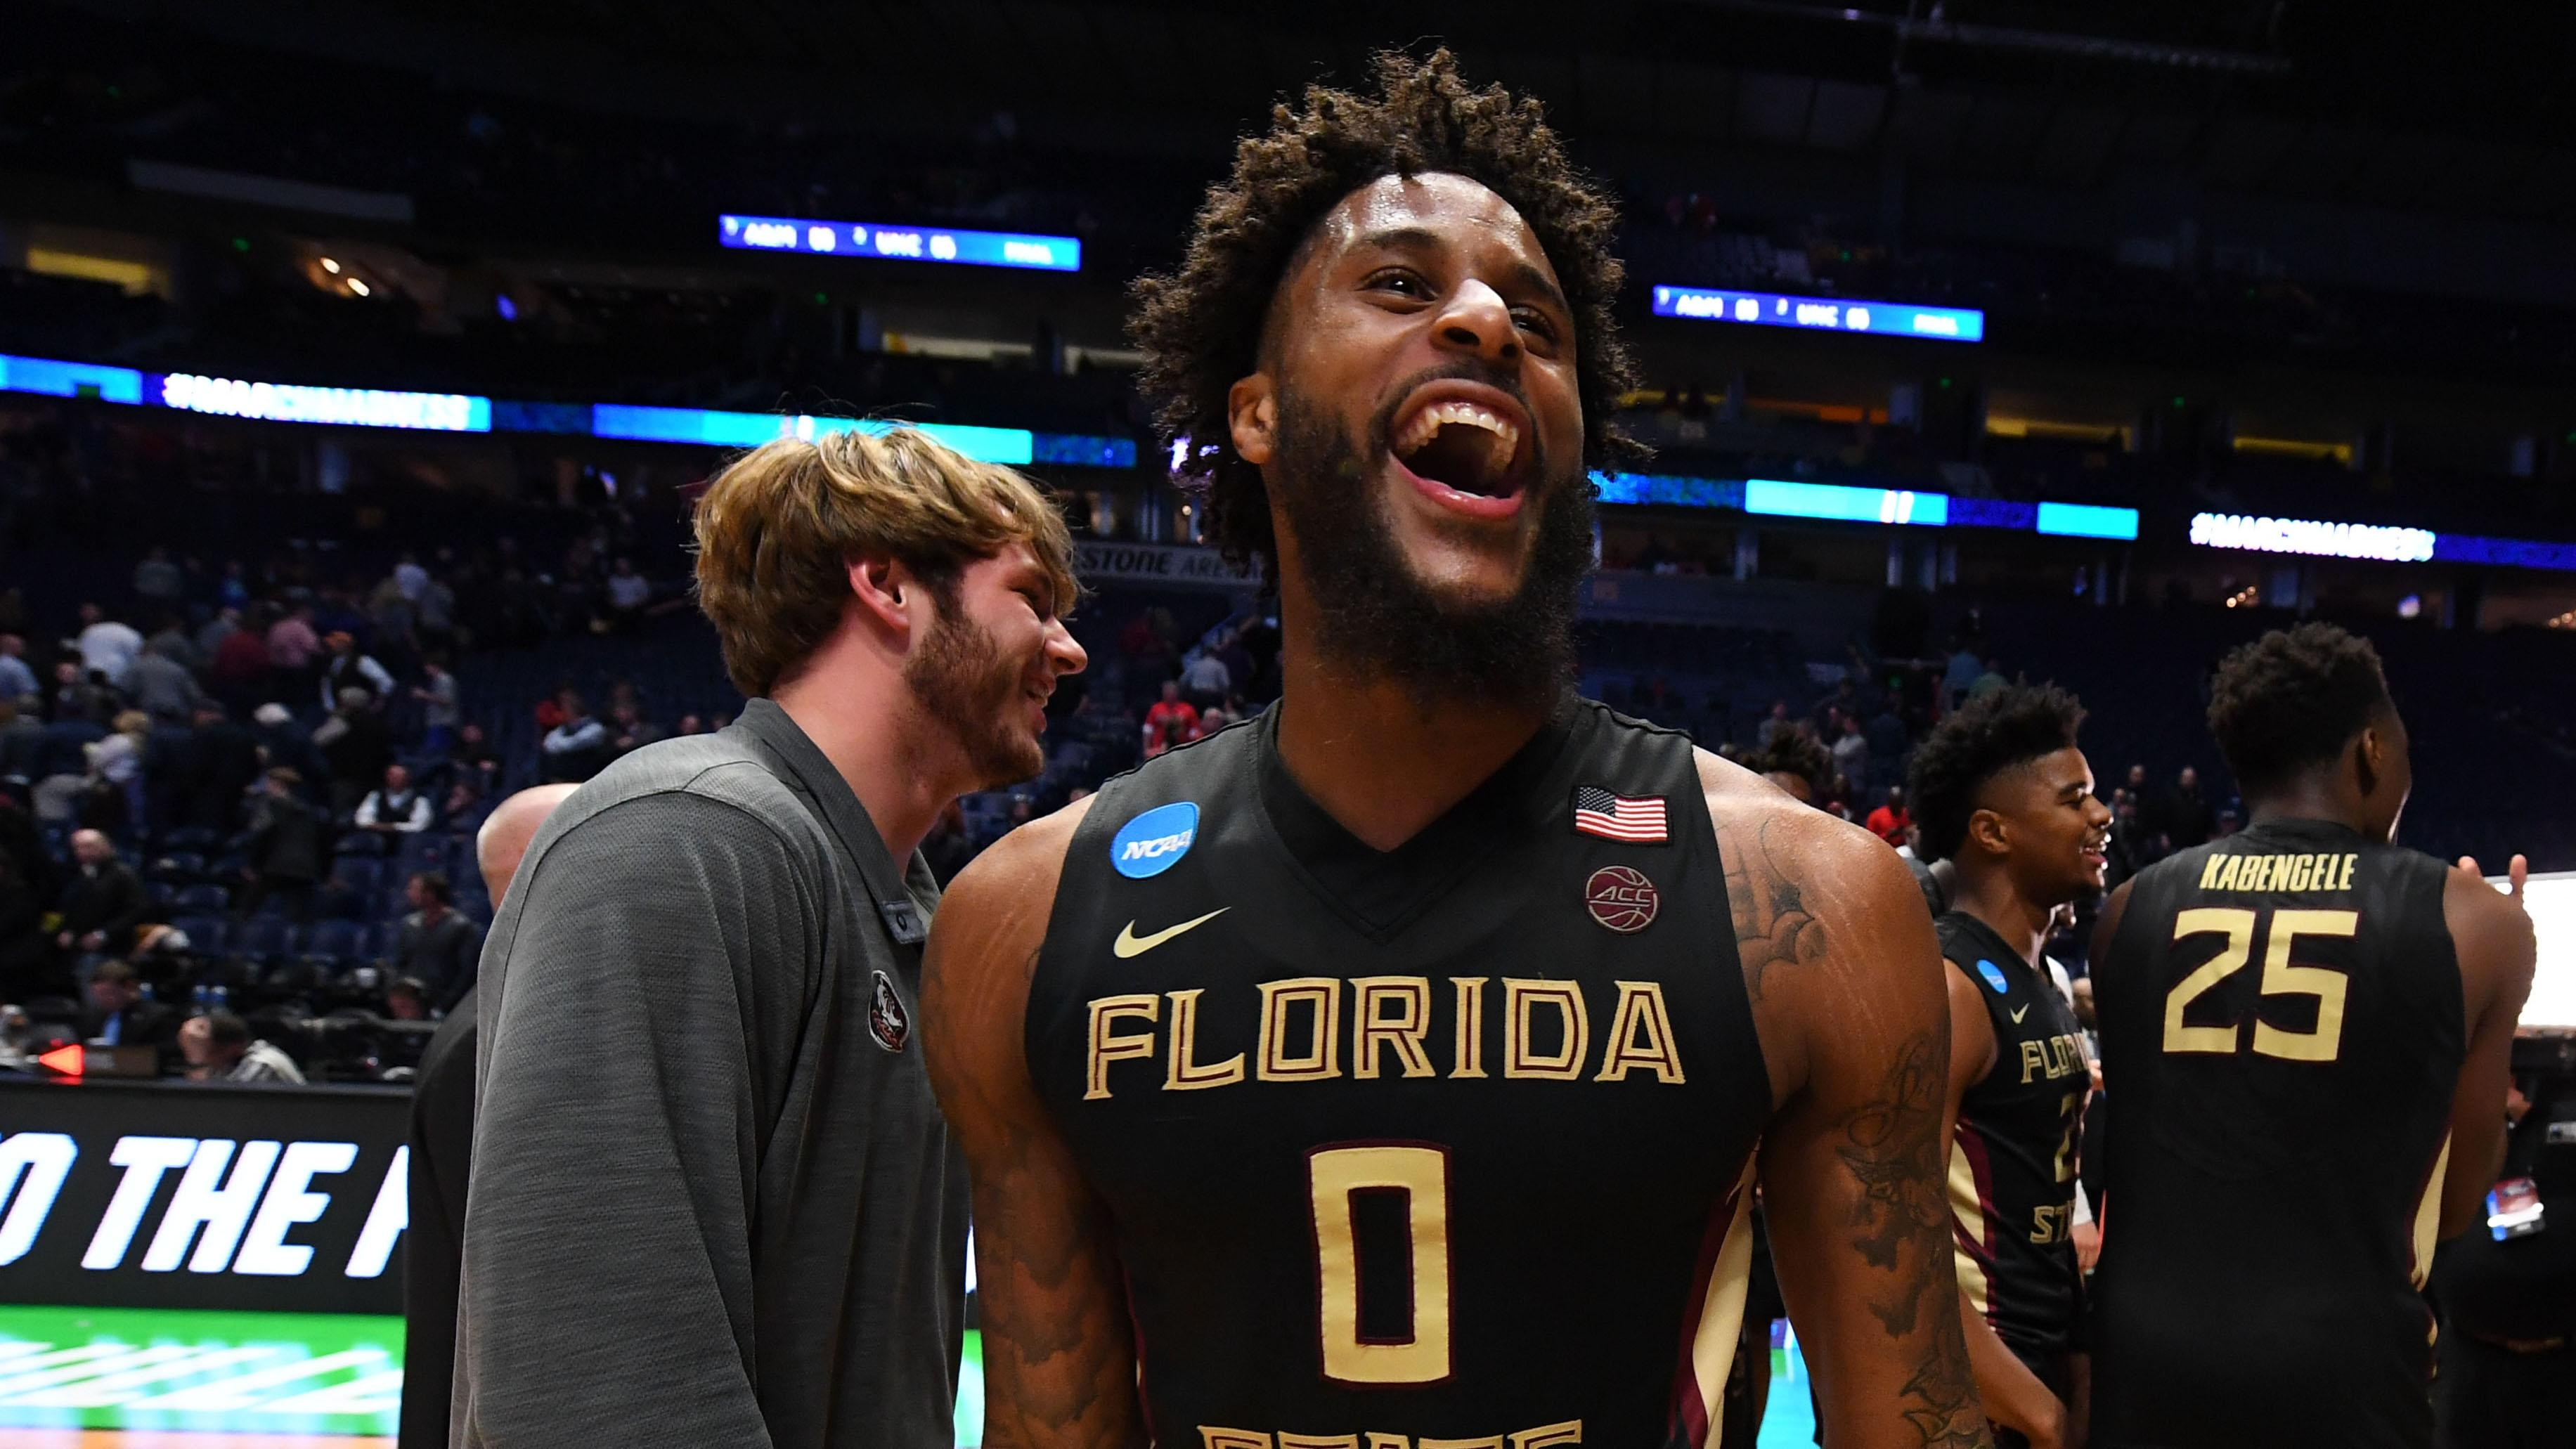 Florida State's Phil Cofer celebrates after beating Xavier